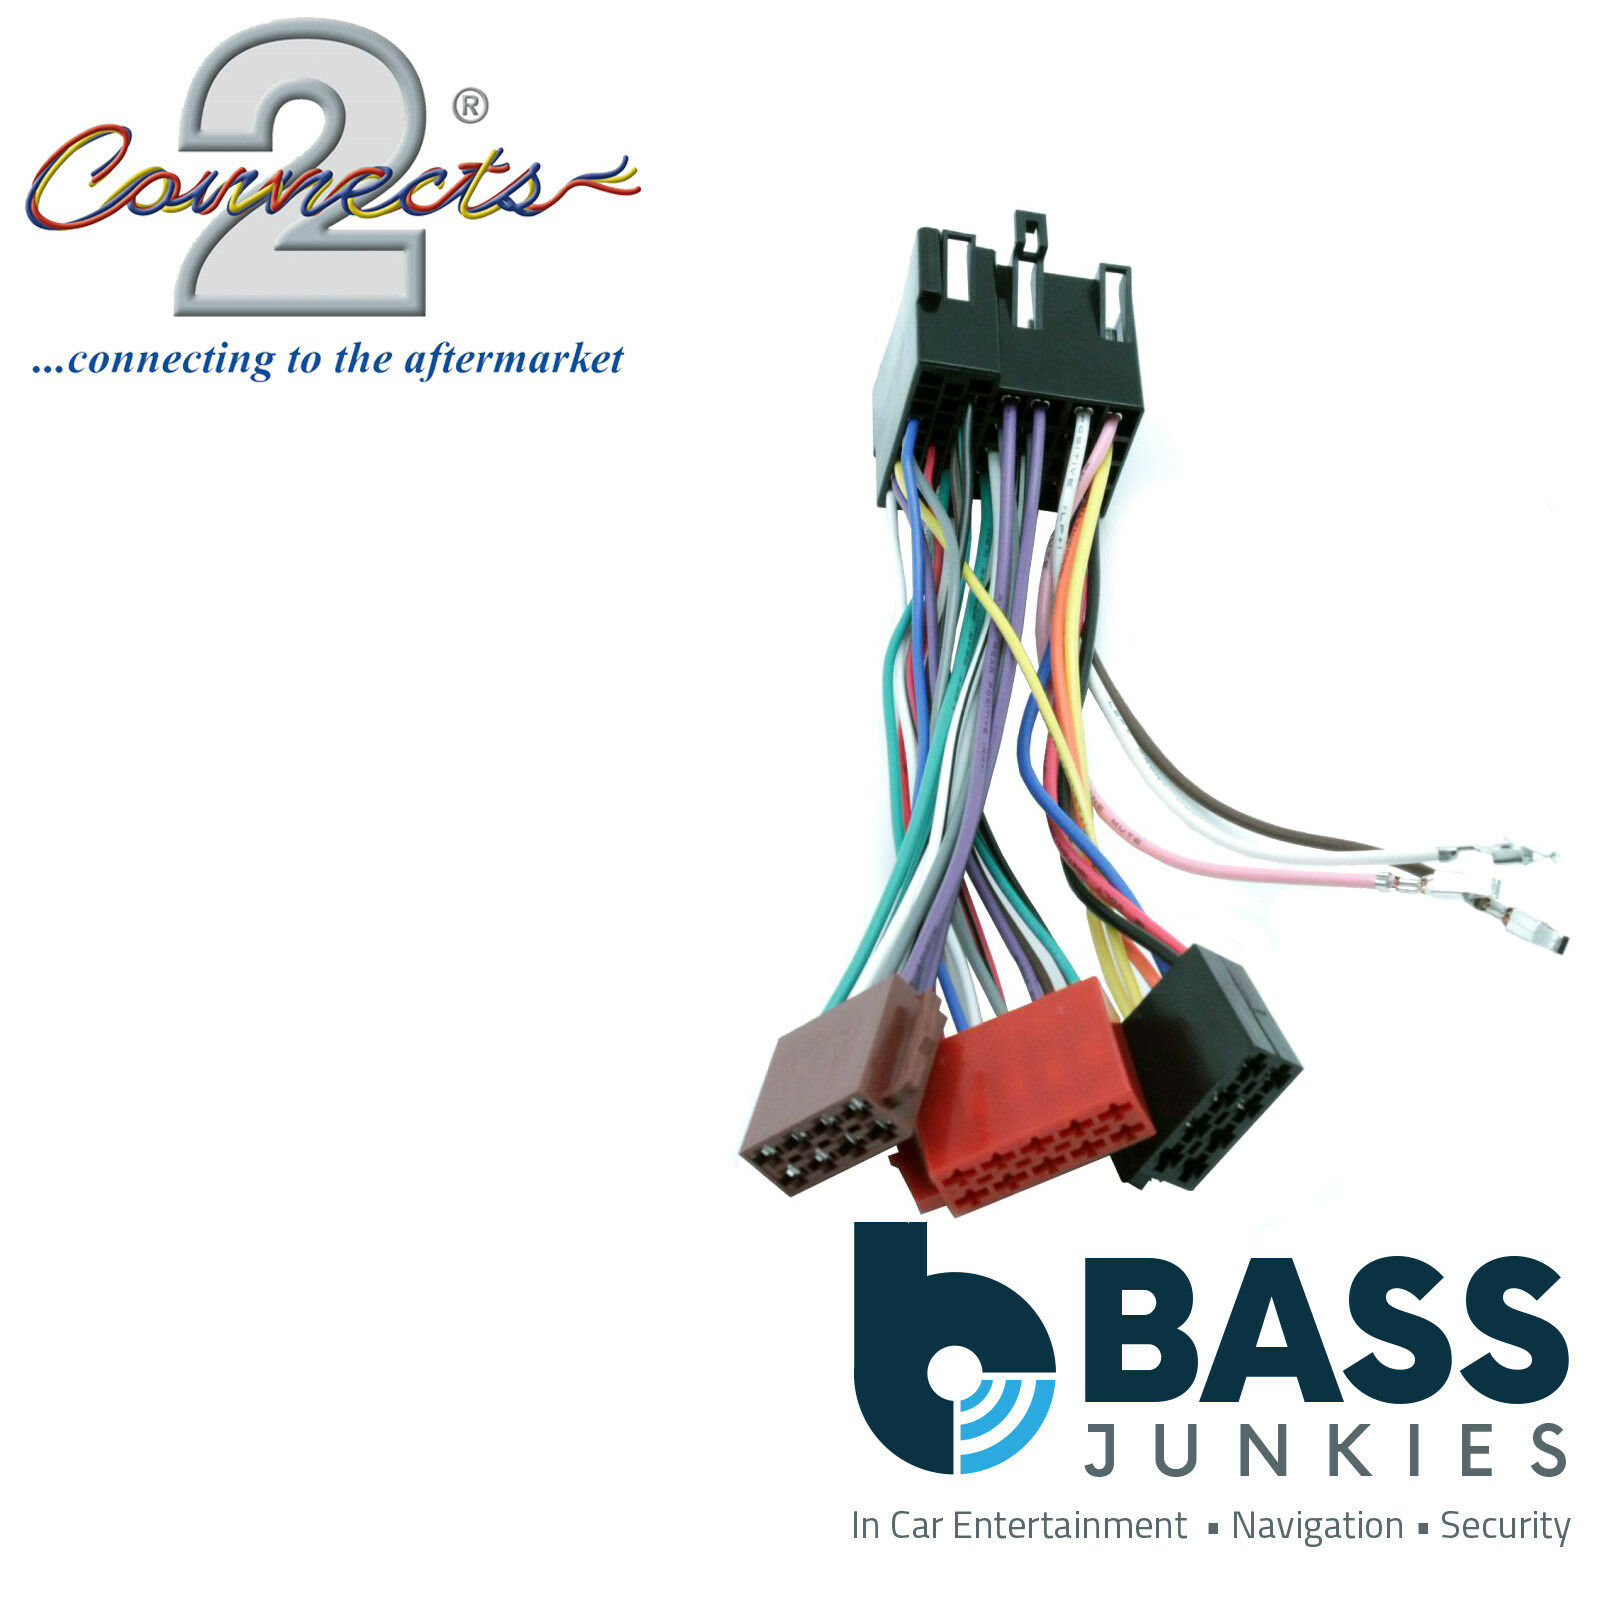 Ct20vx02 Vauxhall Opel Astra G Vectra B Corsa C Iso Wiring Harness 1 Of 1free Shipping